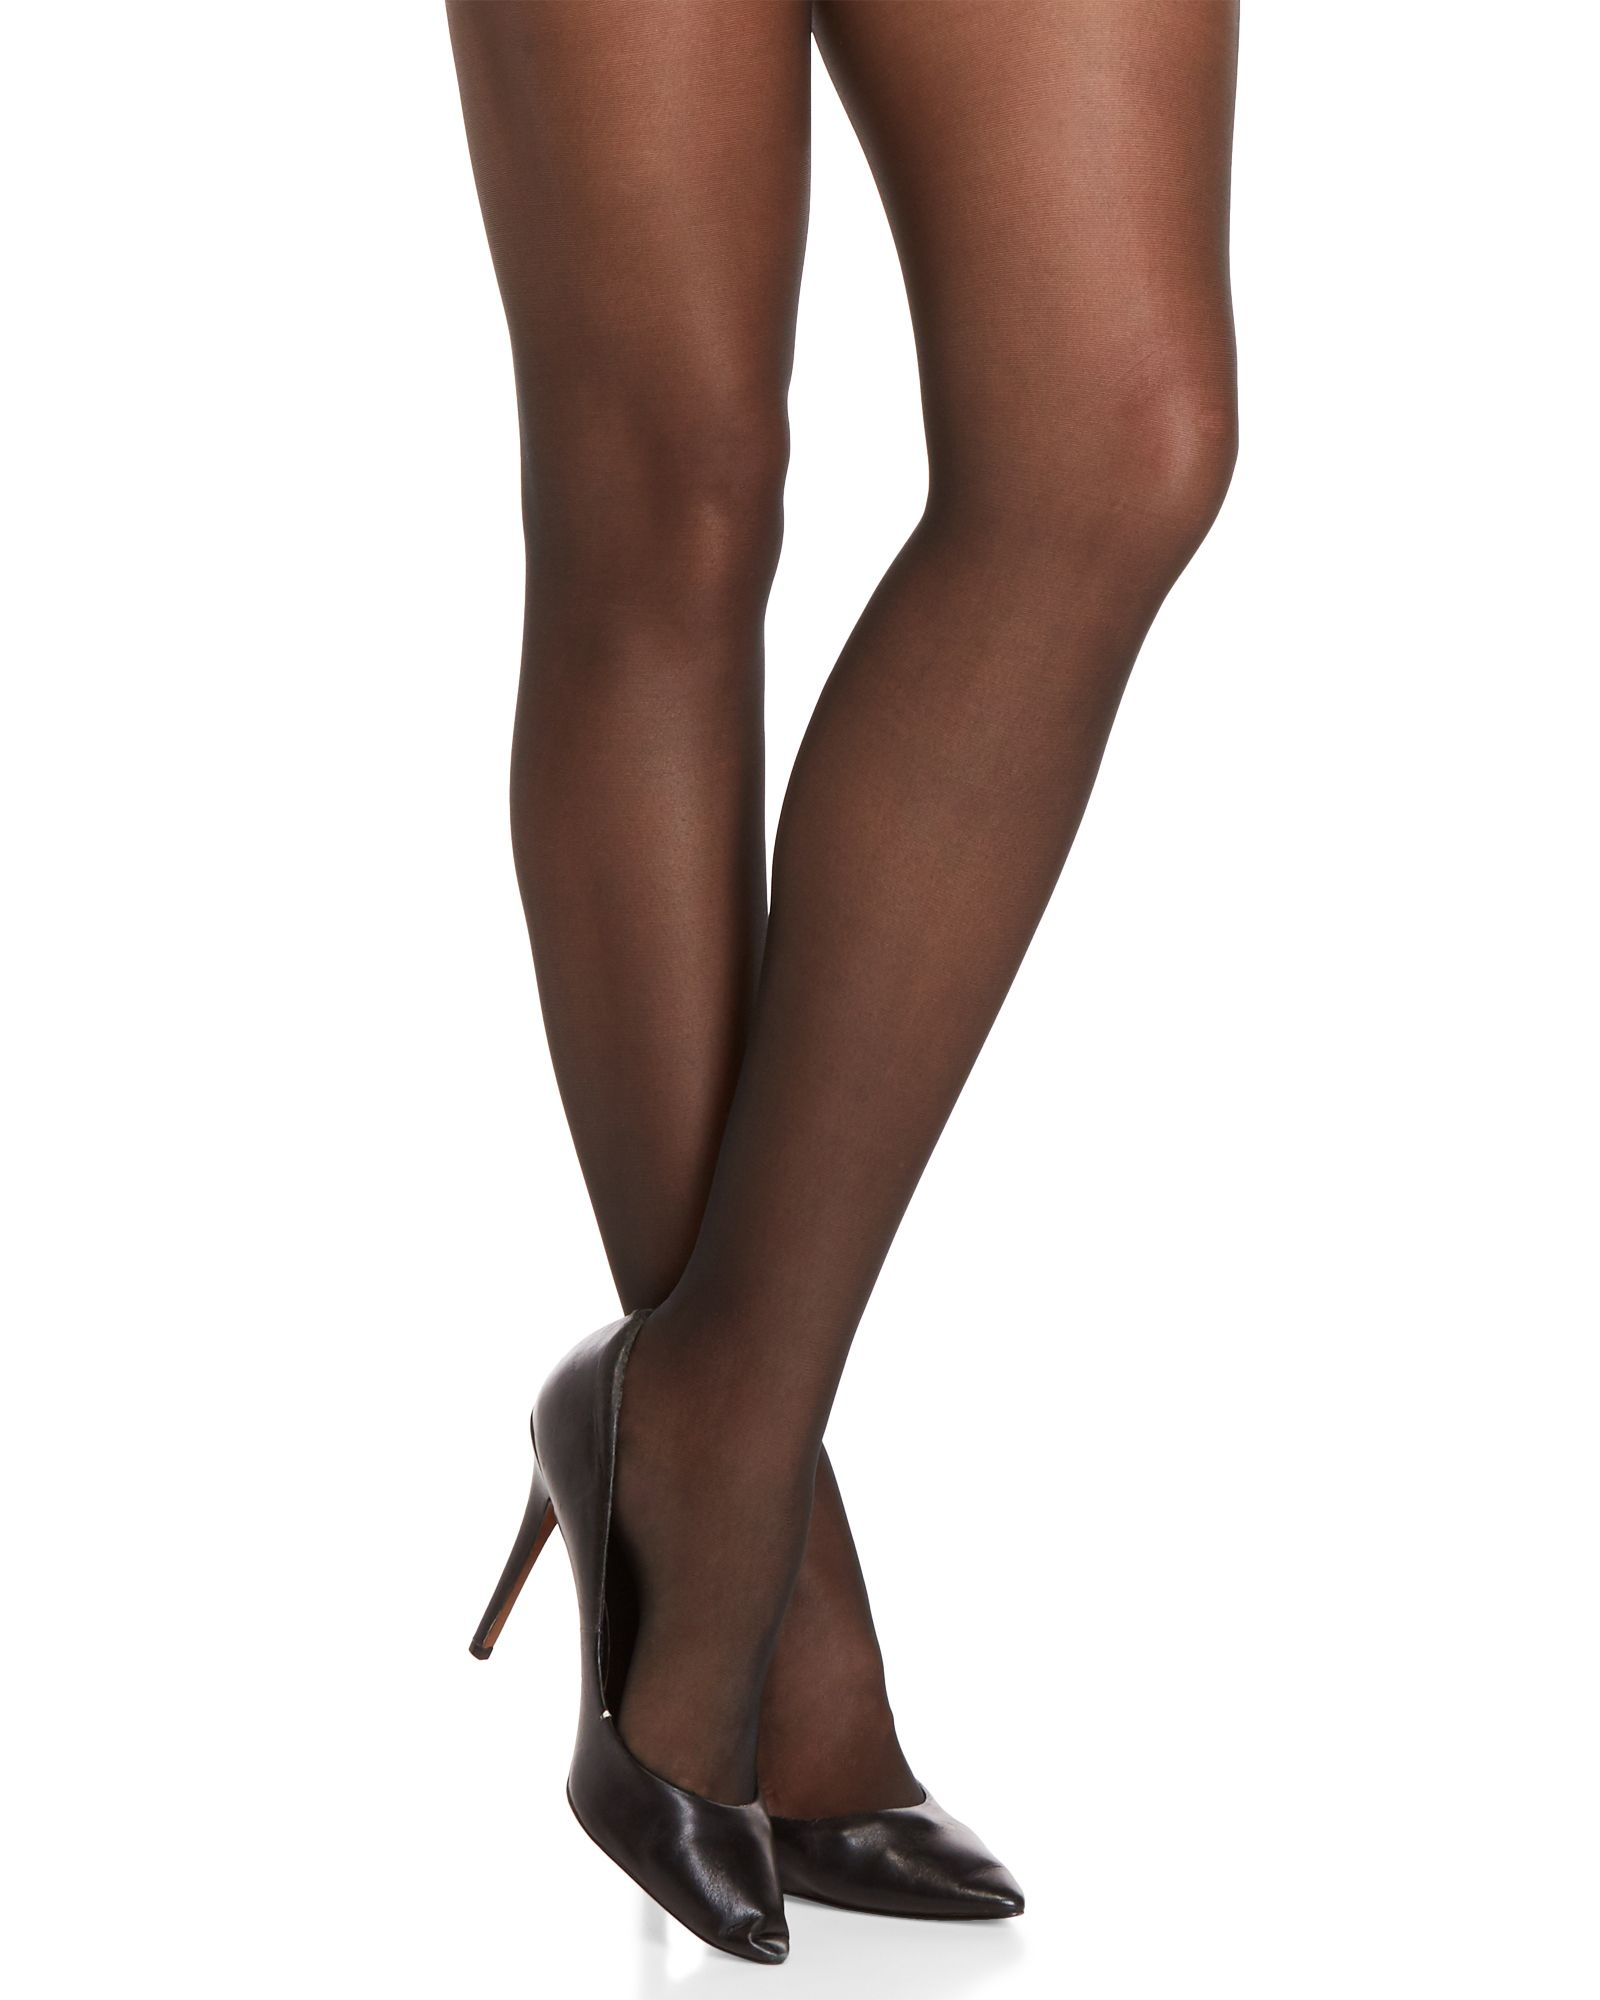 433aa54d0 Wolford Black Affaire 10 Thigh-High Stockings in 2019